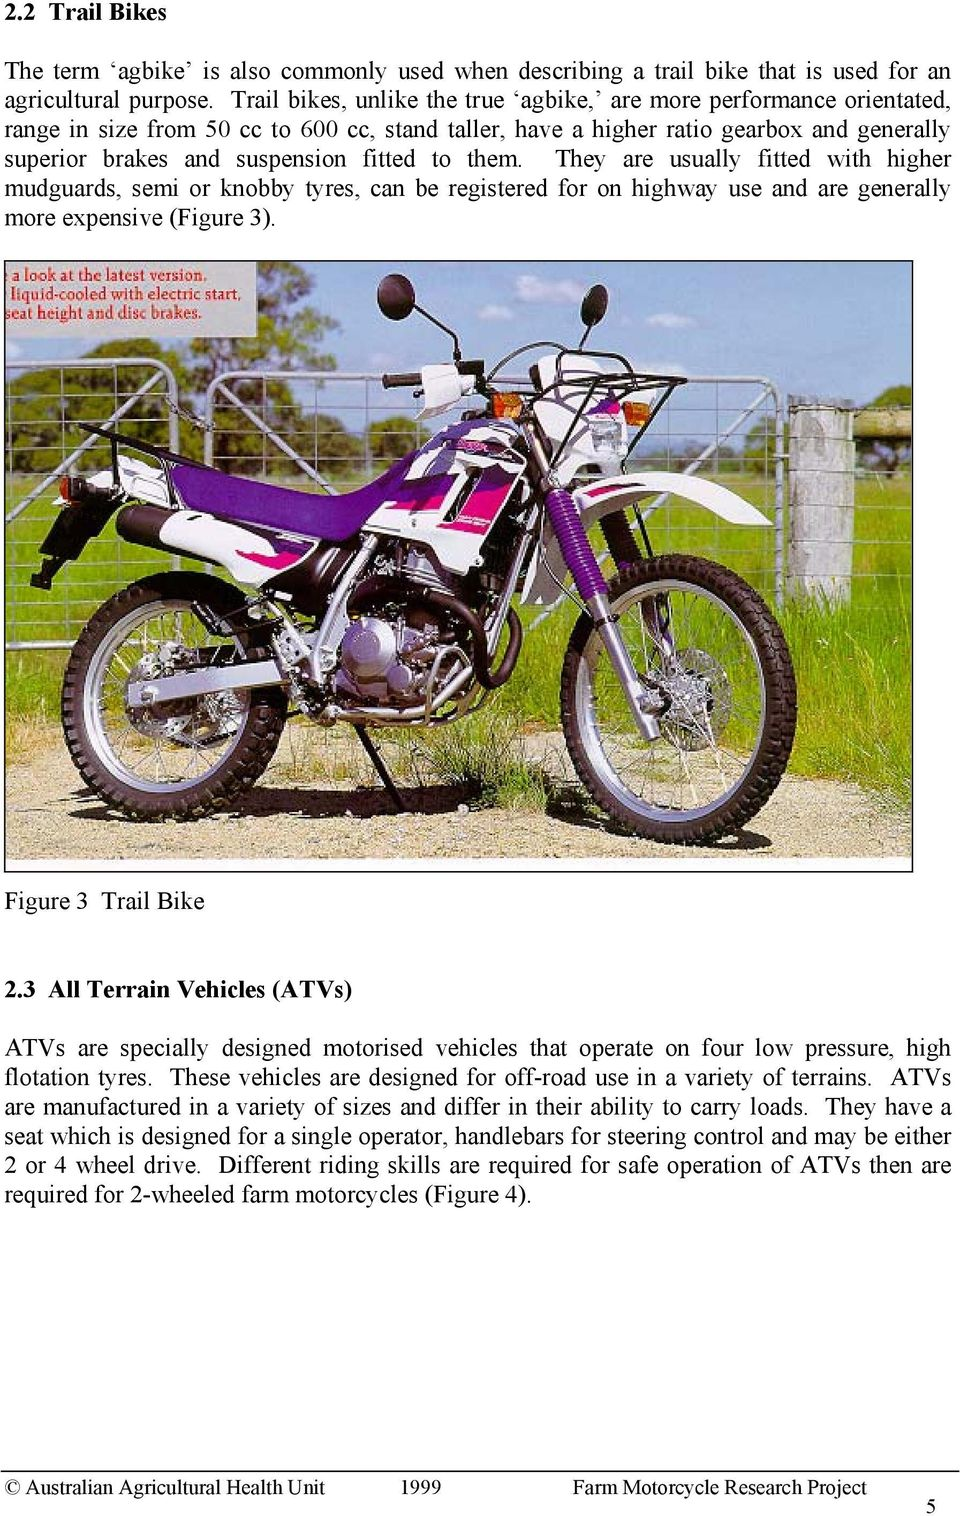 to them. They are usually fitted with higher mudguards, semi or knobby tyres, can be registered for on highway use and are generally more expensive (Figure 3). Figure 3 Trail Bike 2.